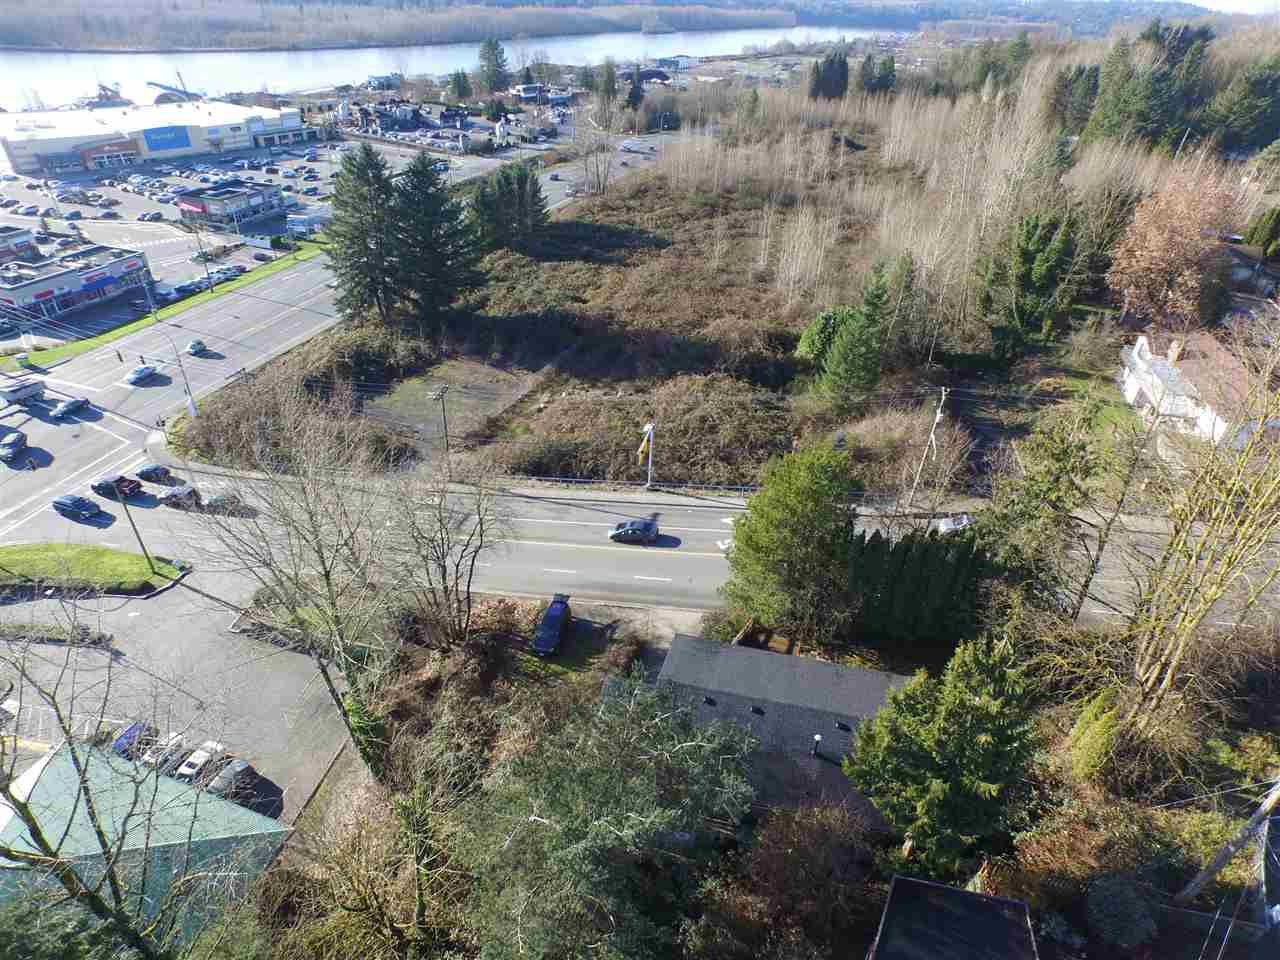 Photo 16: Photos: 7254 WREN STREET in Mission: Mission BC House for sale : MLS®# R2021052